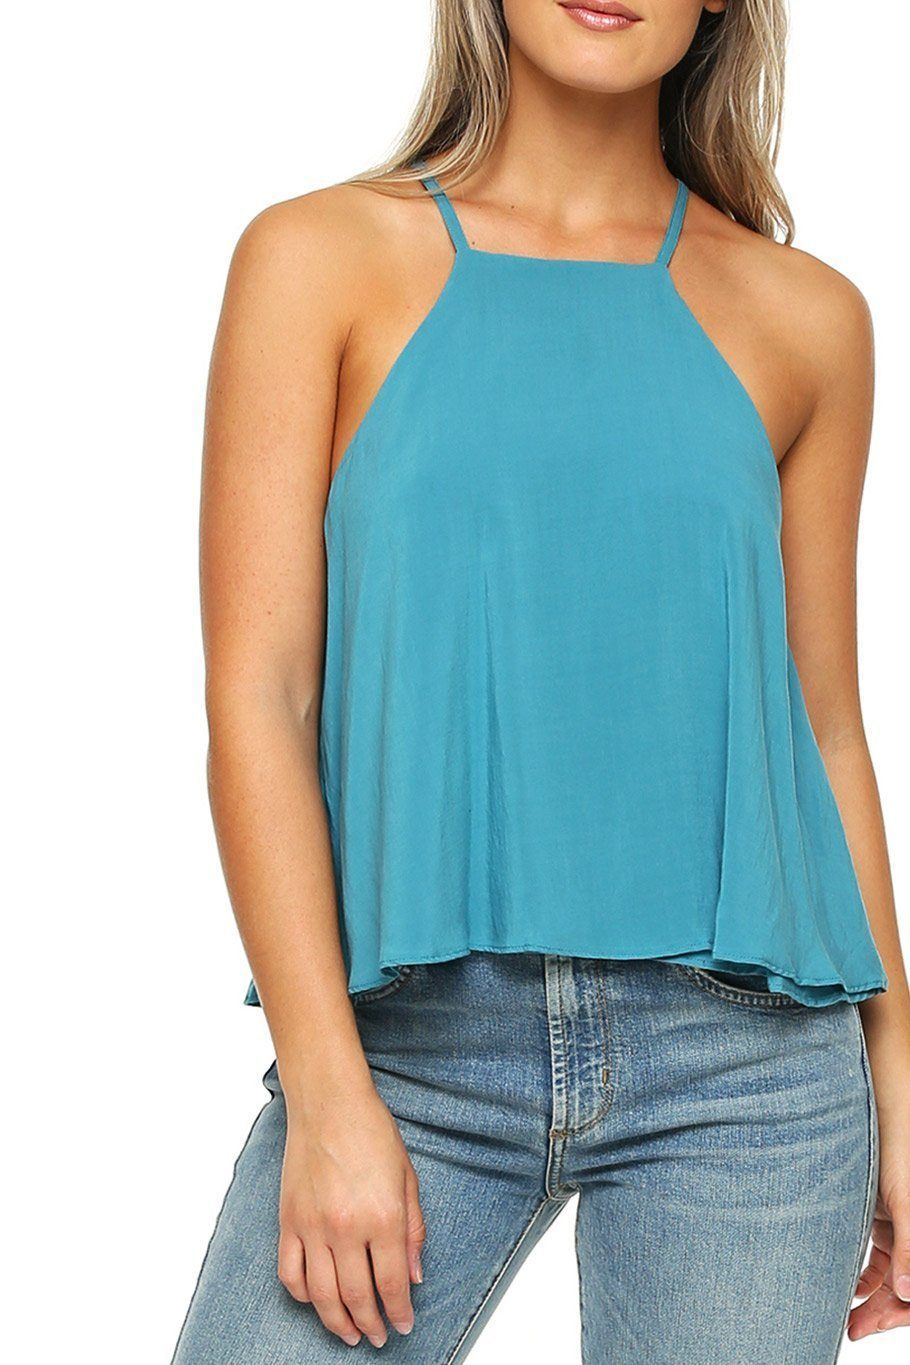 Maui Swing Top - Teal - Shore